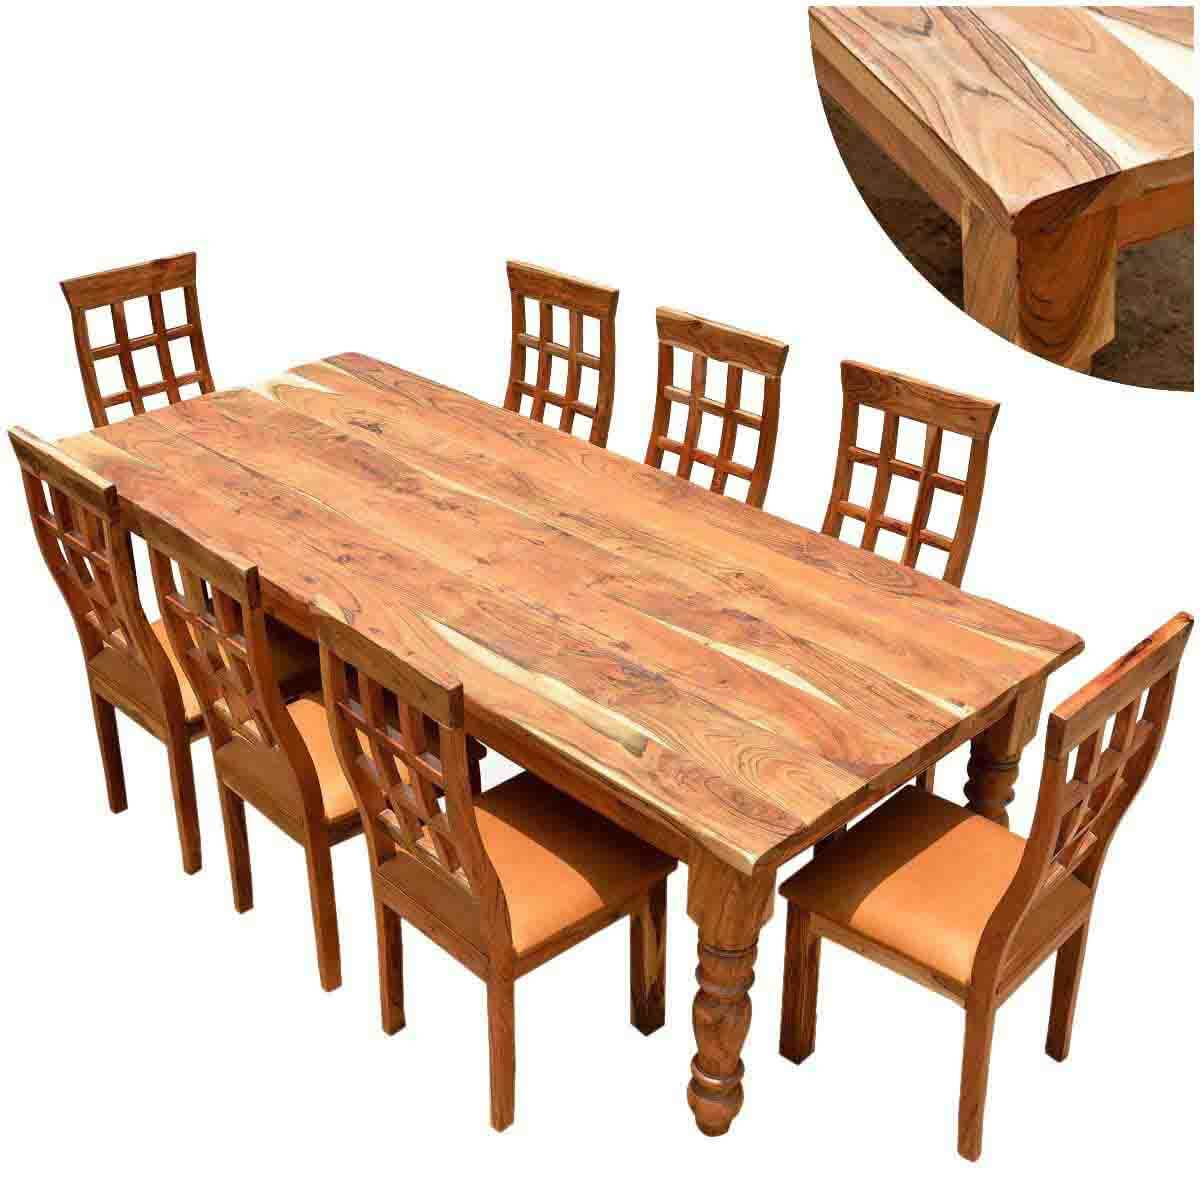 Rustic dining table and chair sets sierra living concepts for Wooden dining table chairs